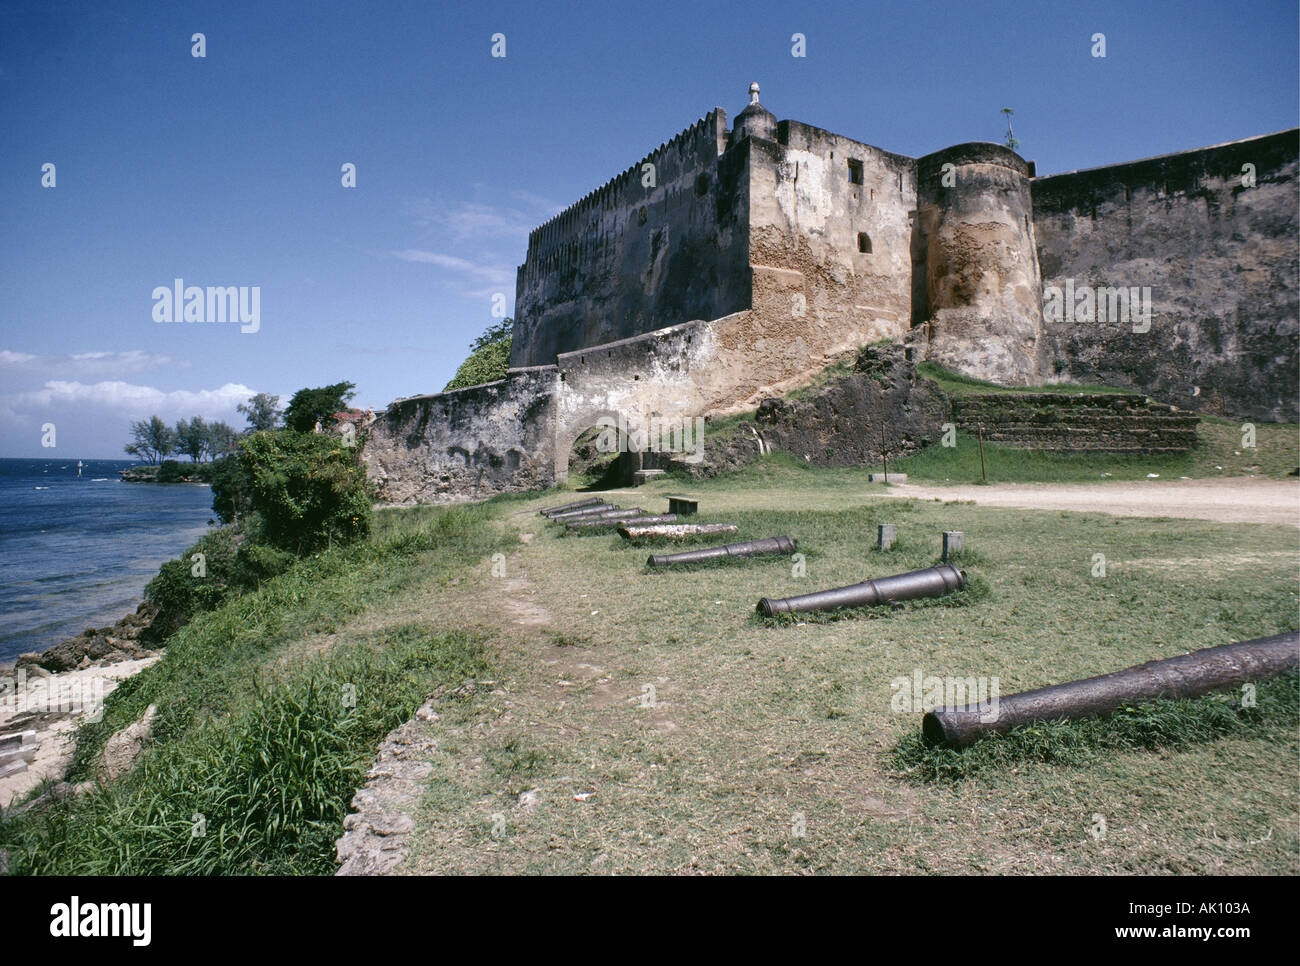 Fort Jesus Mombasa Kenya East Africa Completed by the Portuguese in 1598 the Fort is now a National Museum - Stock Image